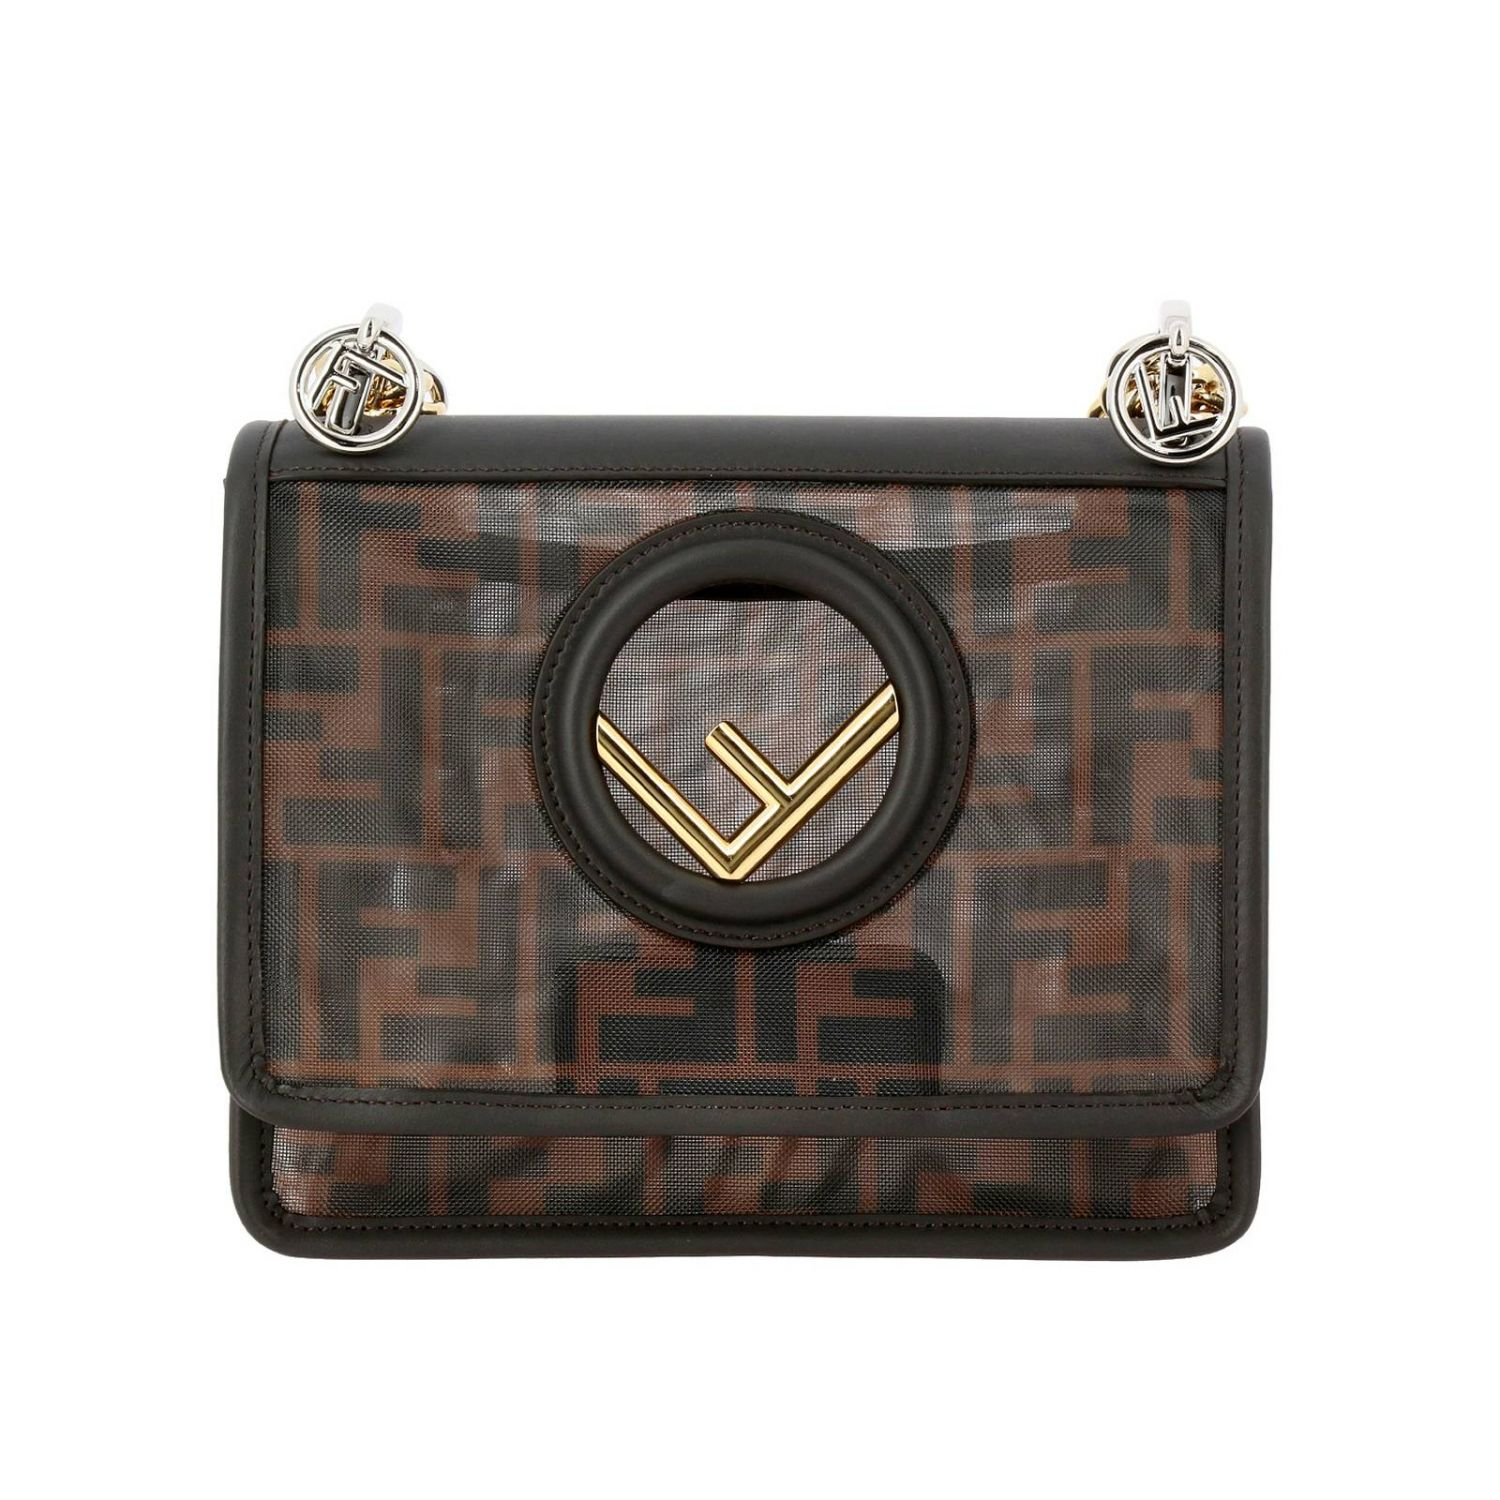 Mini Bag Fendi Kan I Small Shoulder Bag In Smooth Leather With New Fendi Double Logo